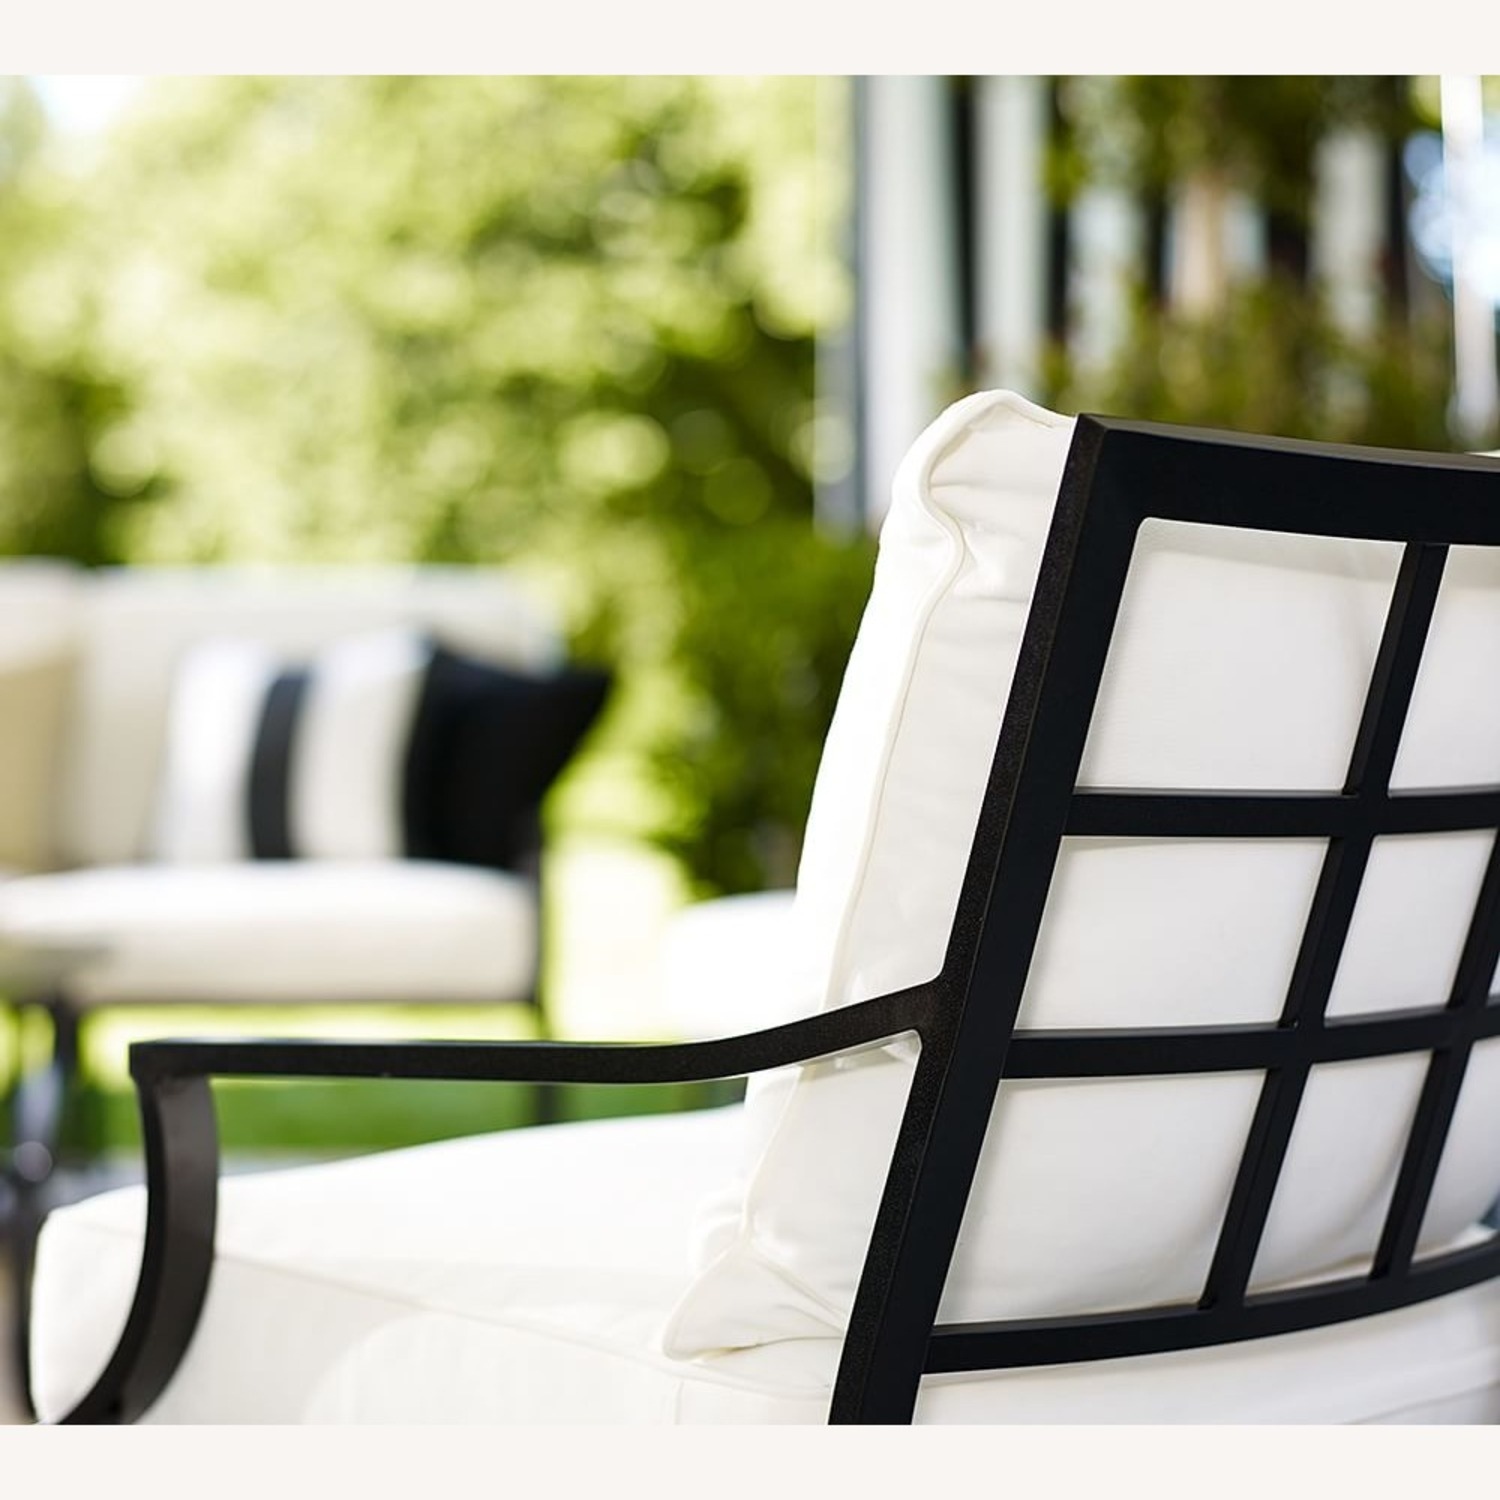 Pottery Barn Riviera Lounge Chair Frame, Black - image-2